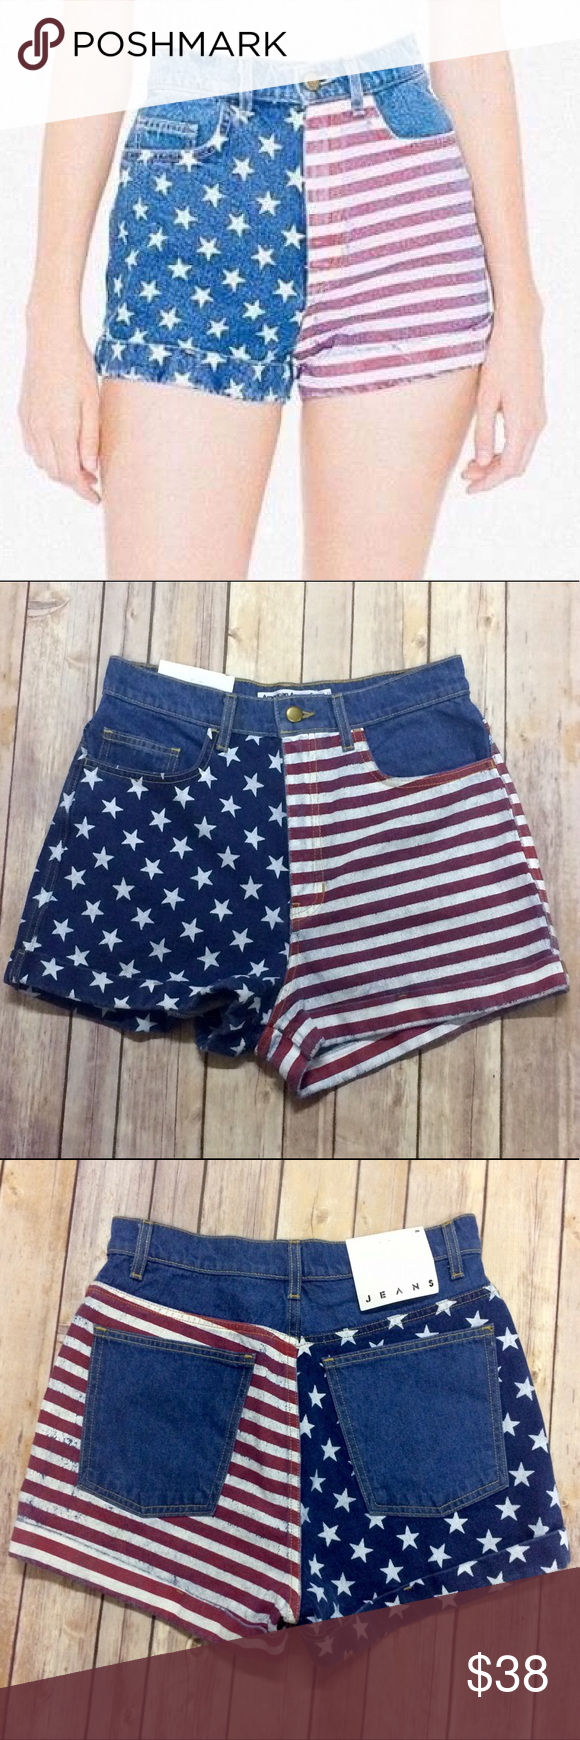 American Arel High Waisted Flag Jean Shorts 13 Rise